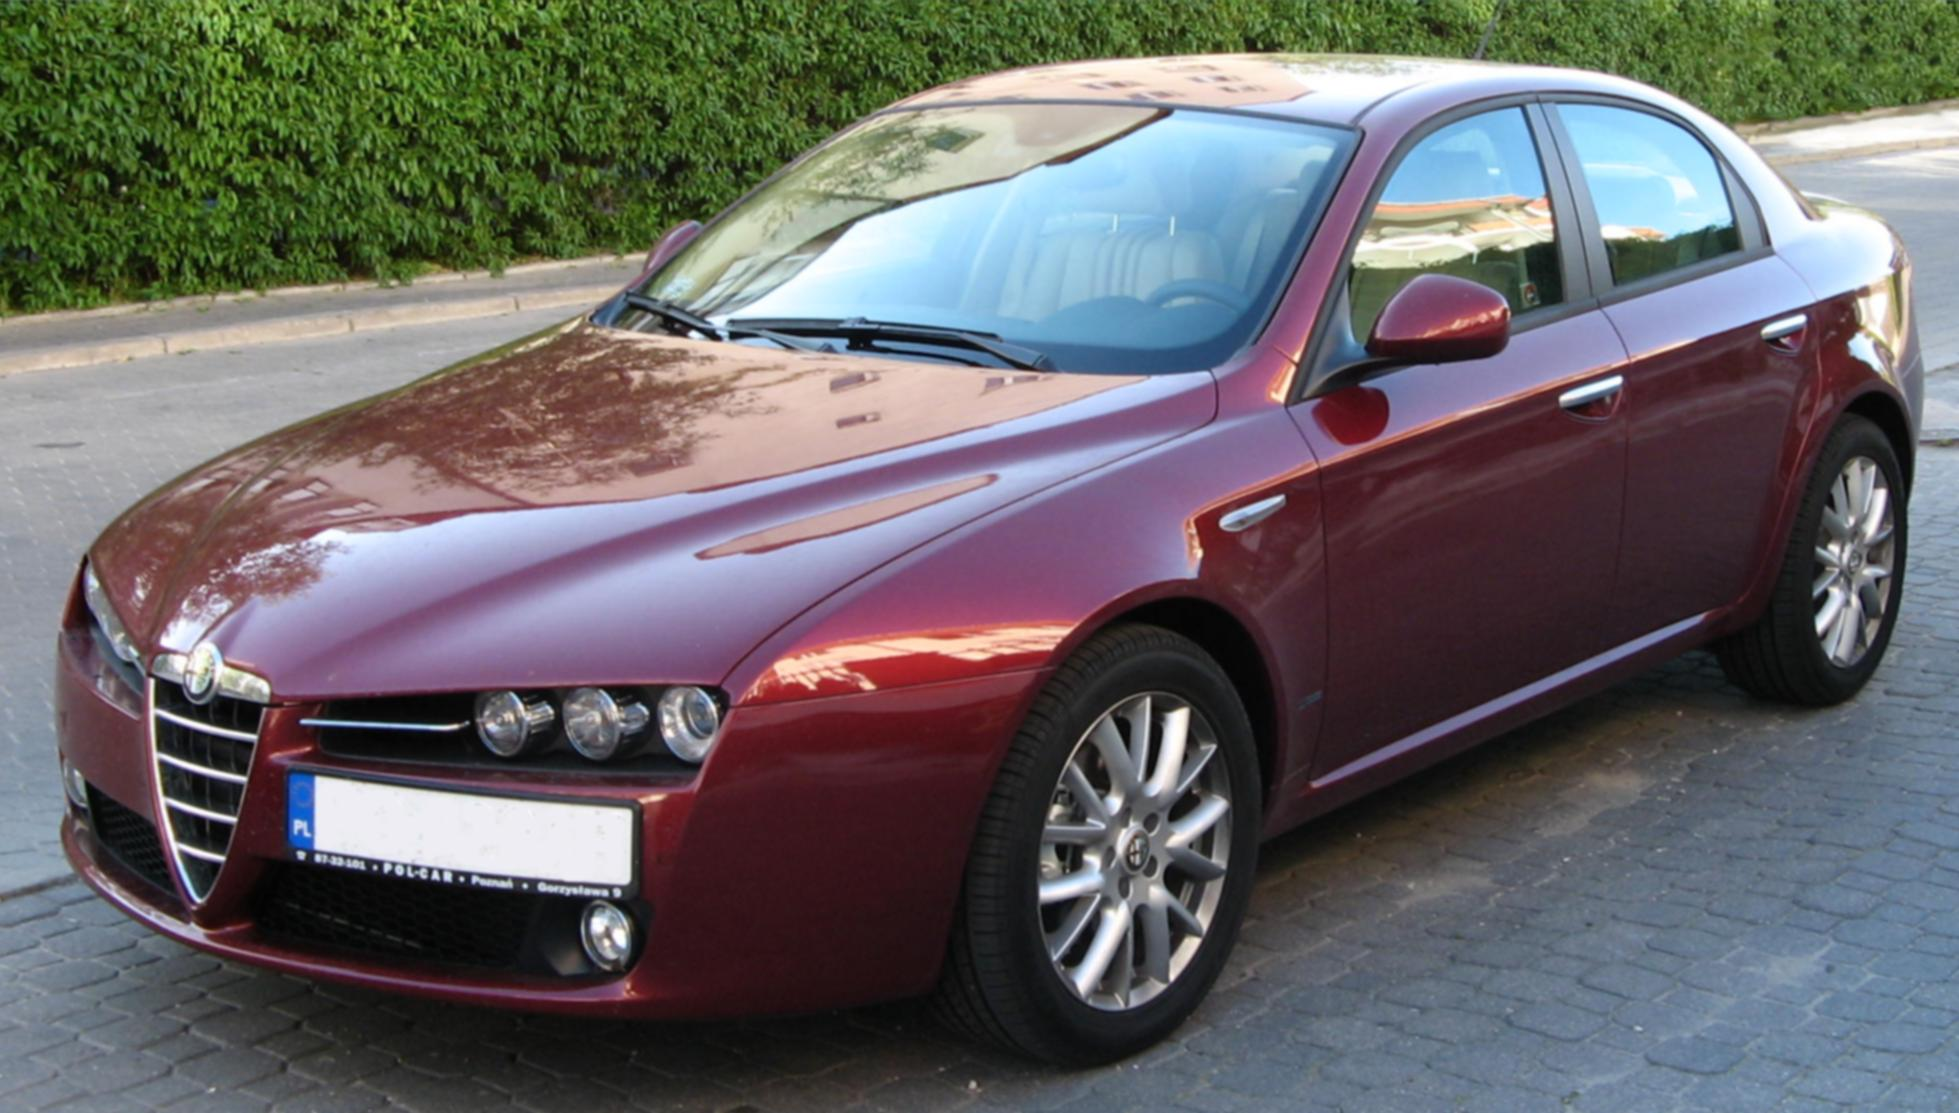 2013 Alfa Romeo 159 Red Sedan